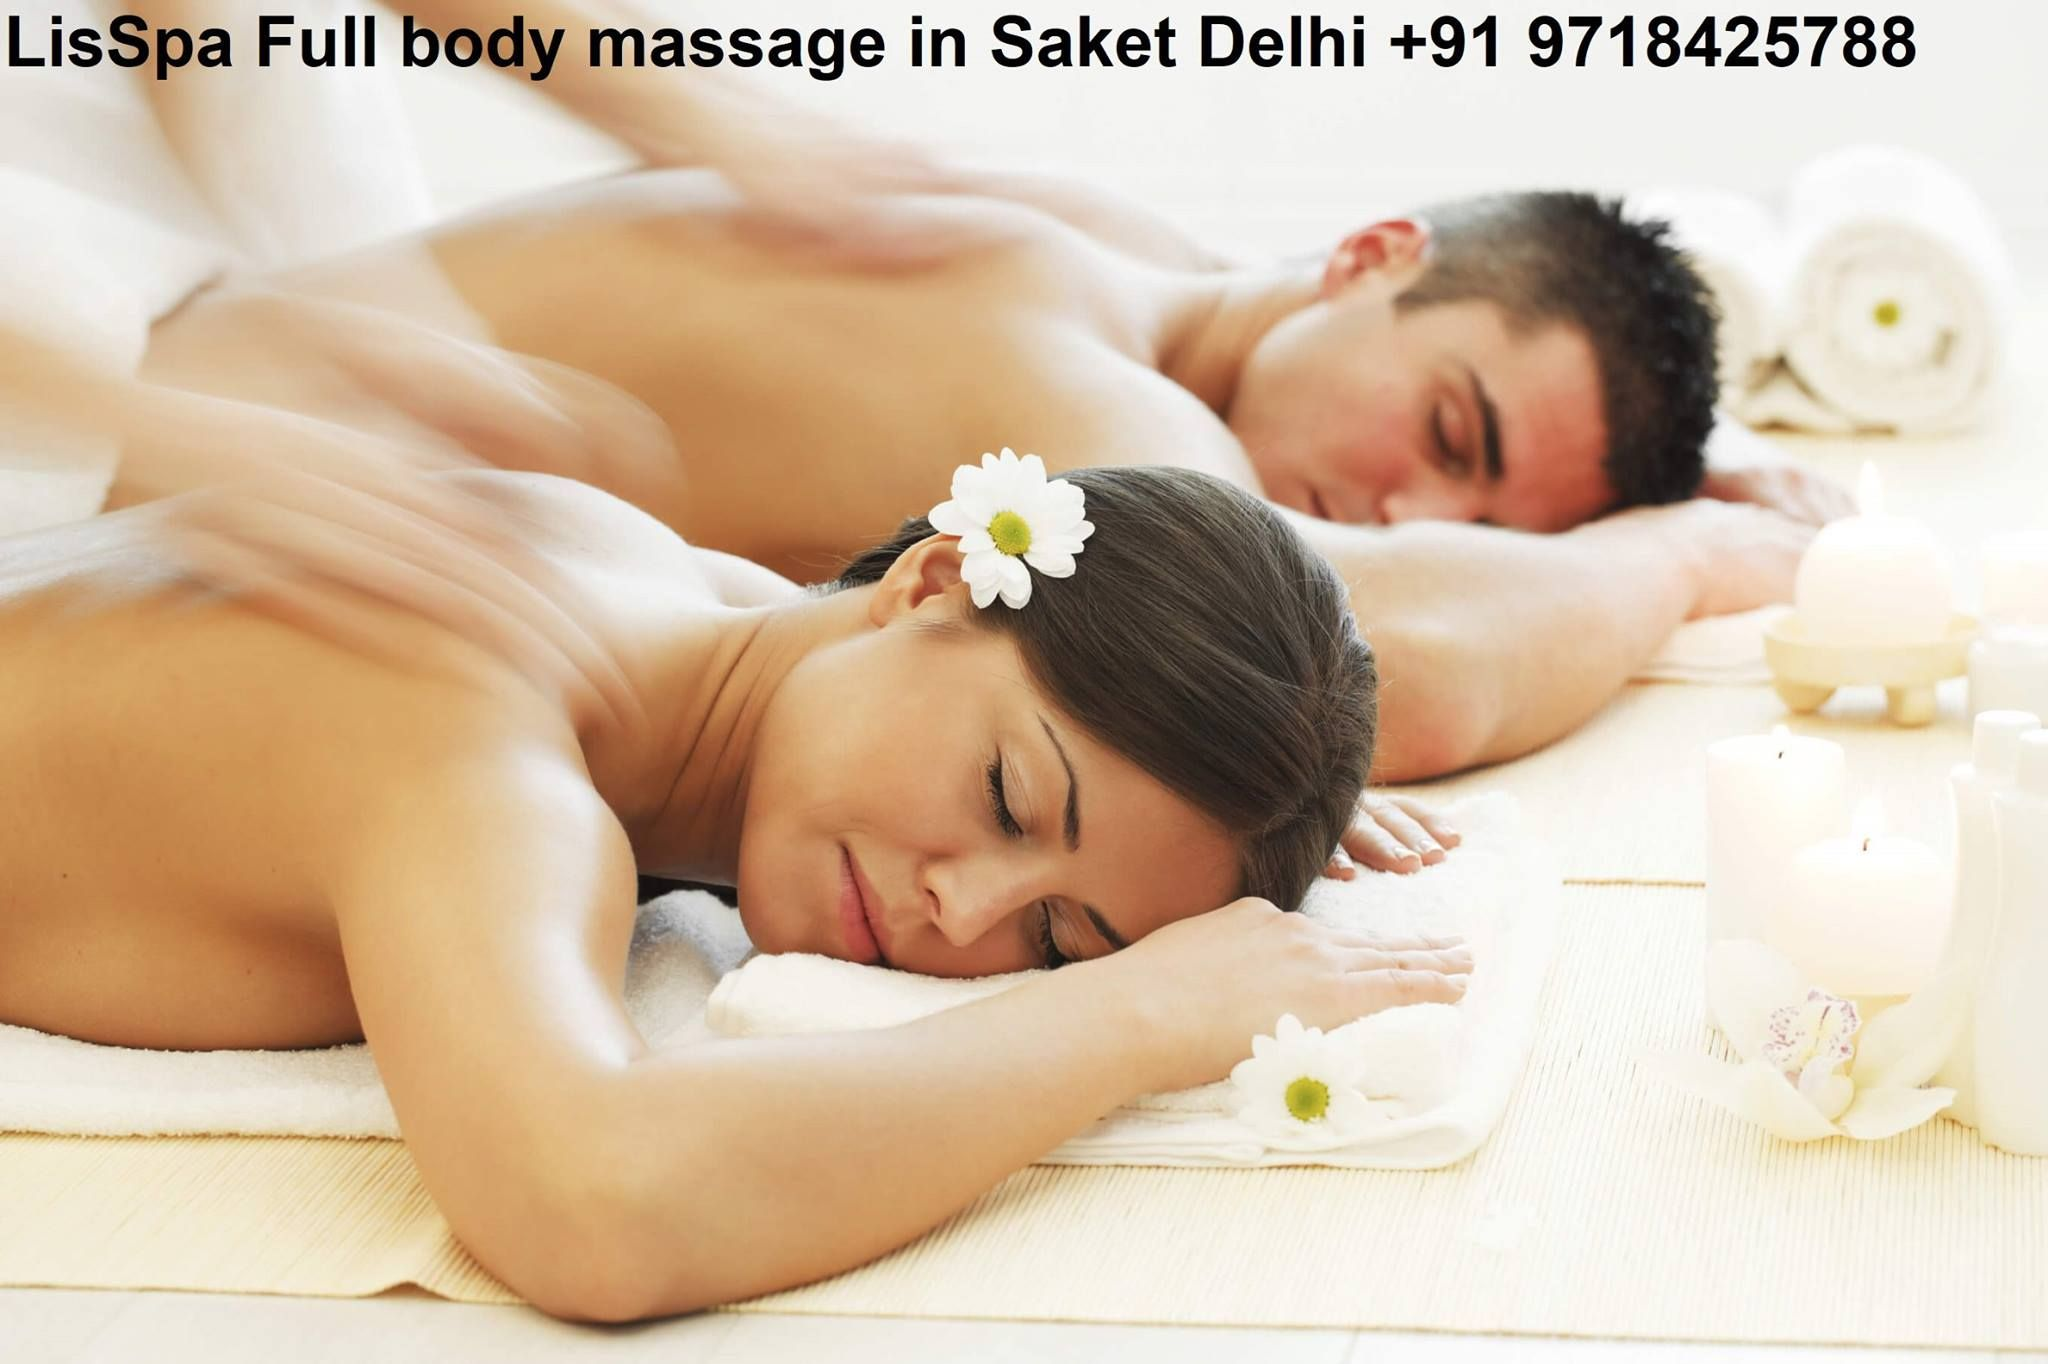 Lisspa Full Body Massage In Delhi Unique Combination Of Three Precisely Selected Massage Procedures Starts With R Couples Massage Couples Spa Body Massage